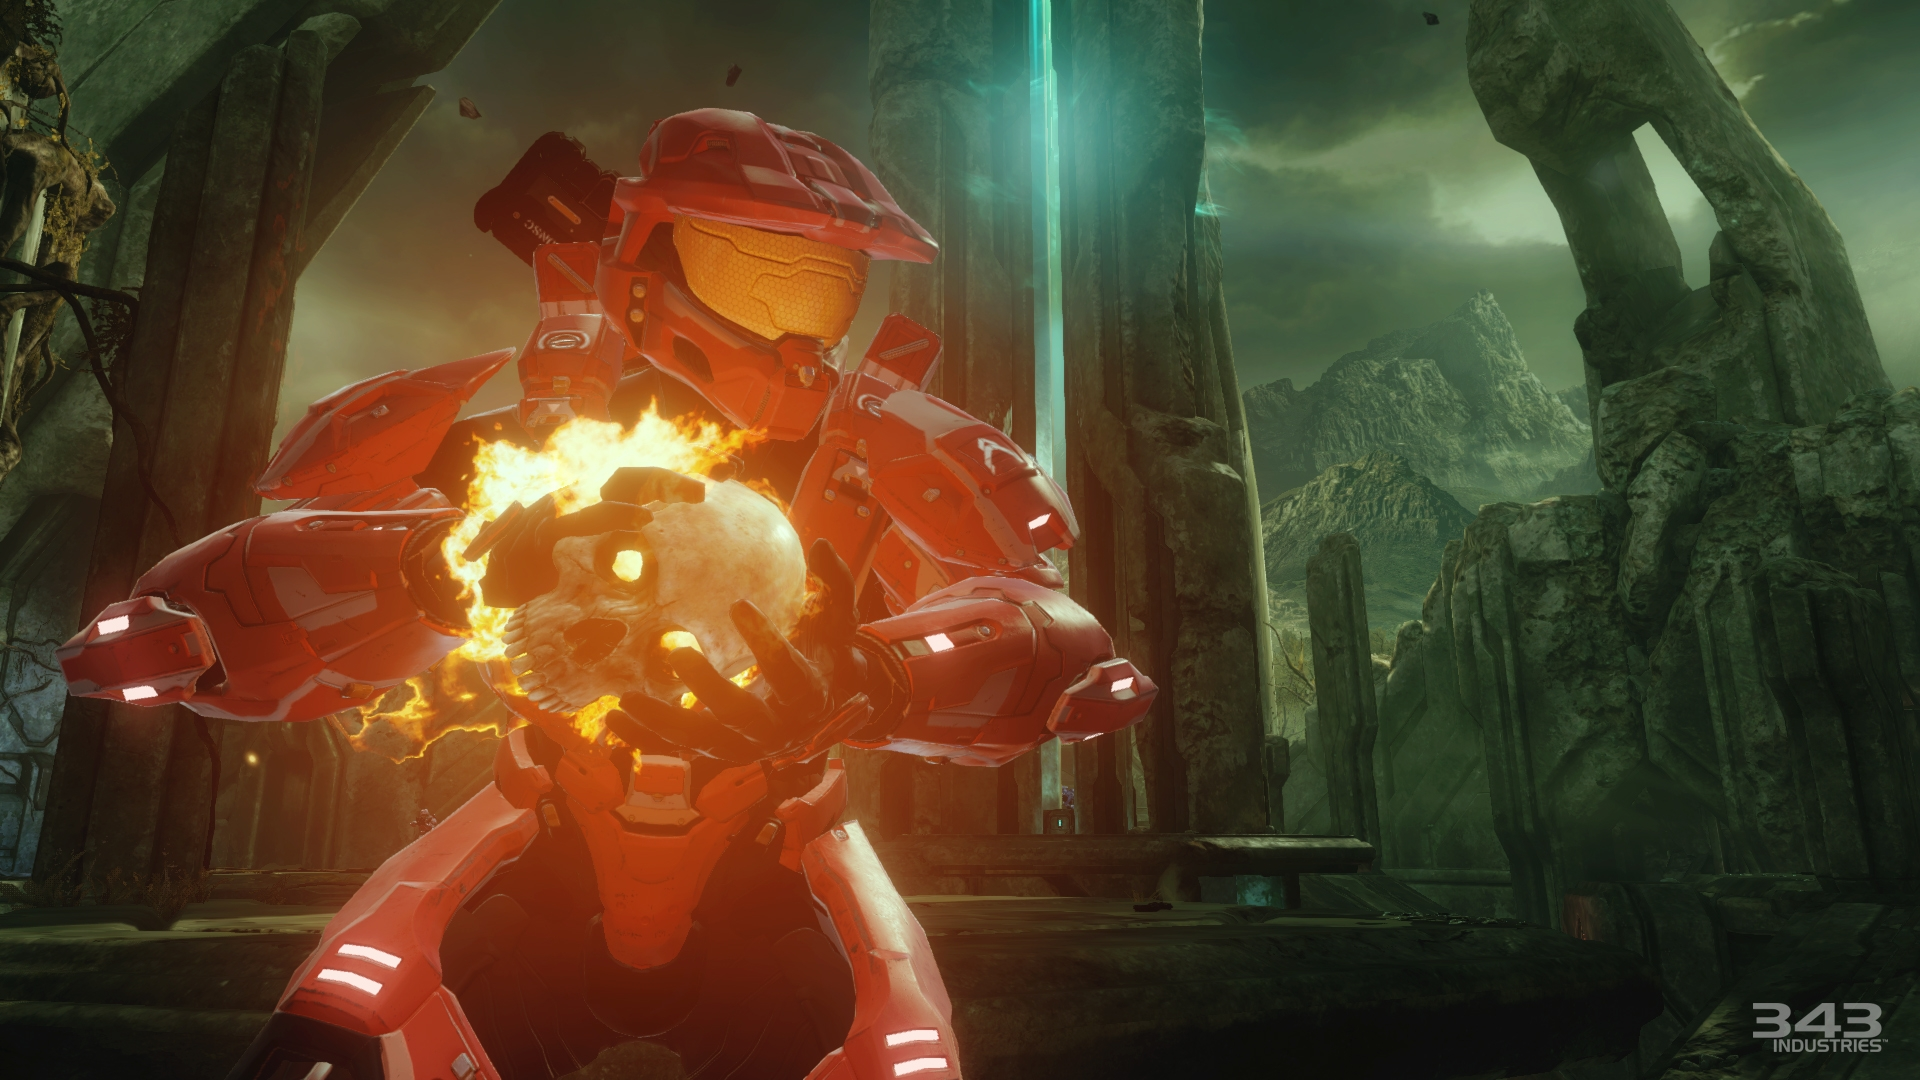 Скриншот из игры Halo: The Master Chief Collection под номером 2